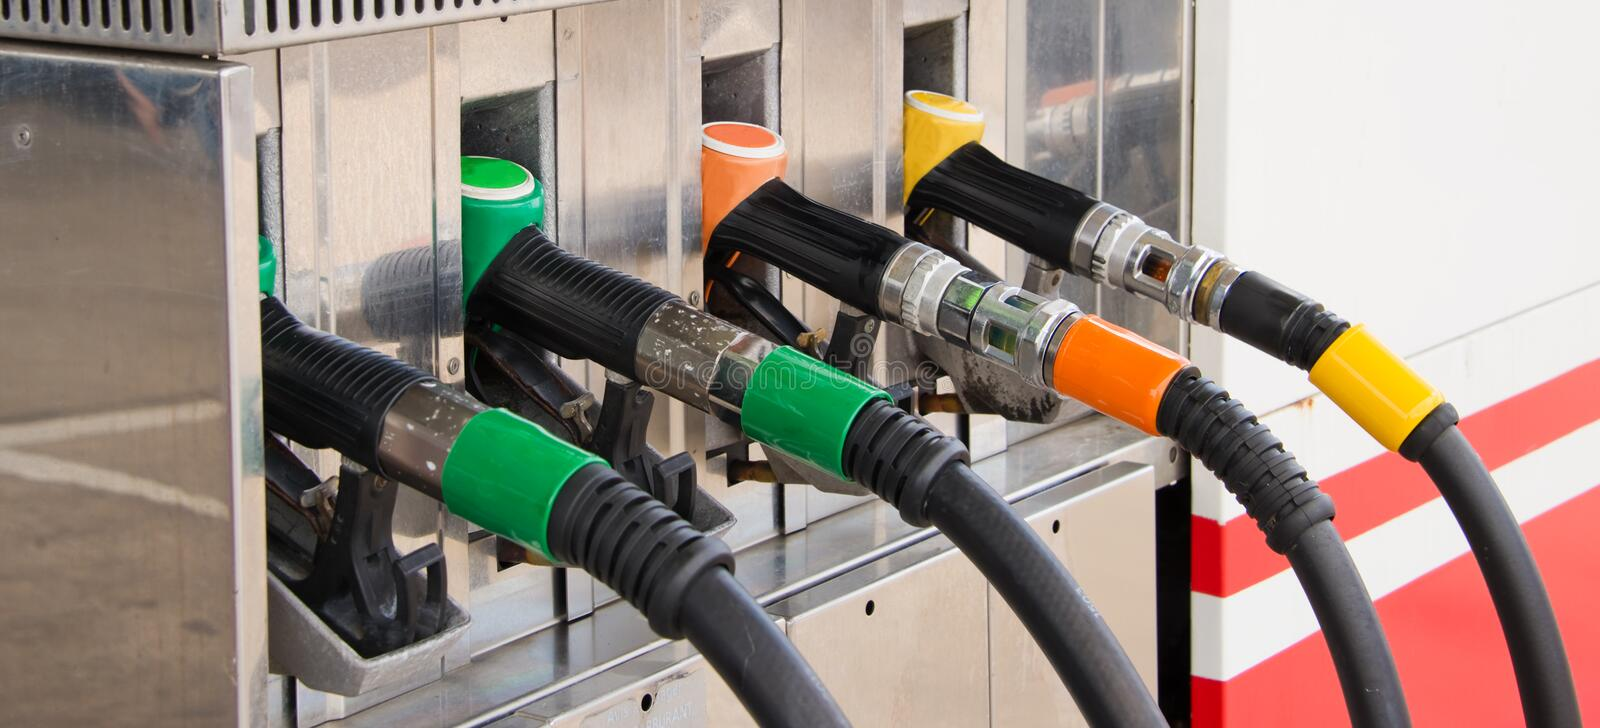 Close up of gas pump nozzles. Panoramic royalty free stock images